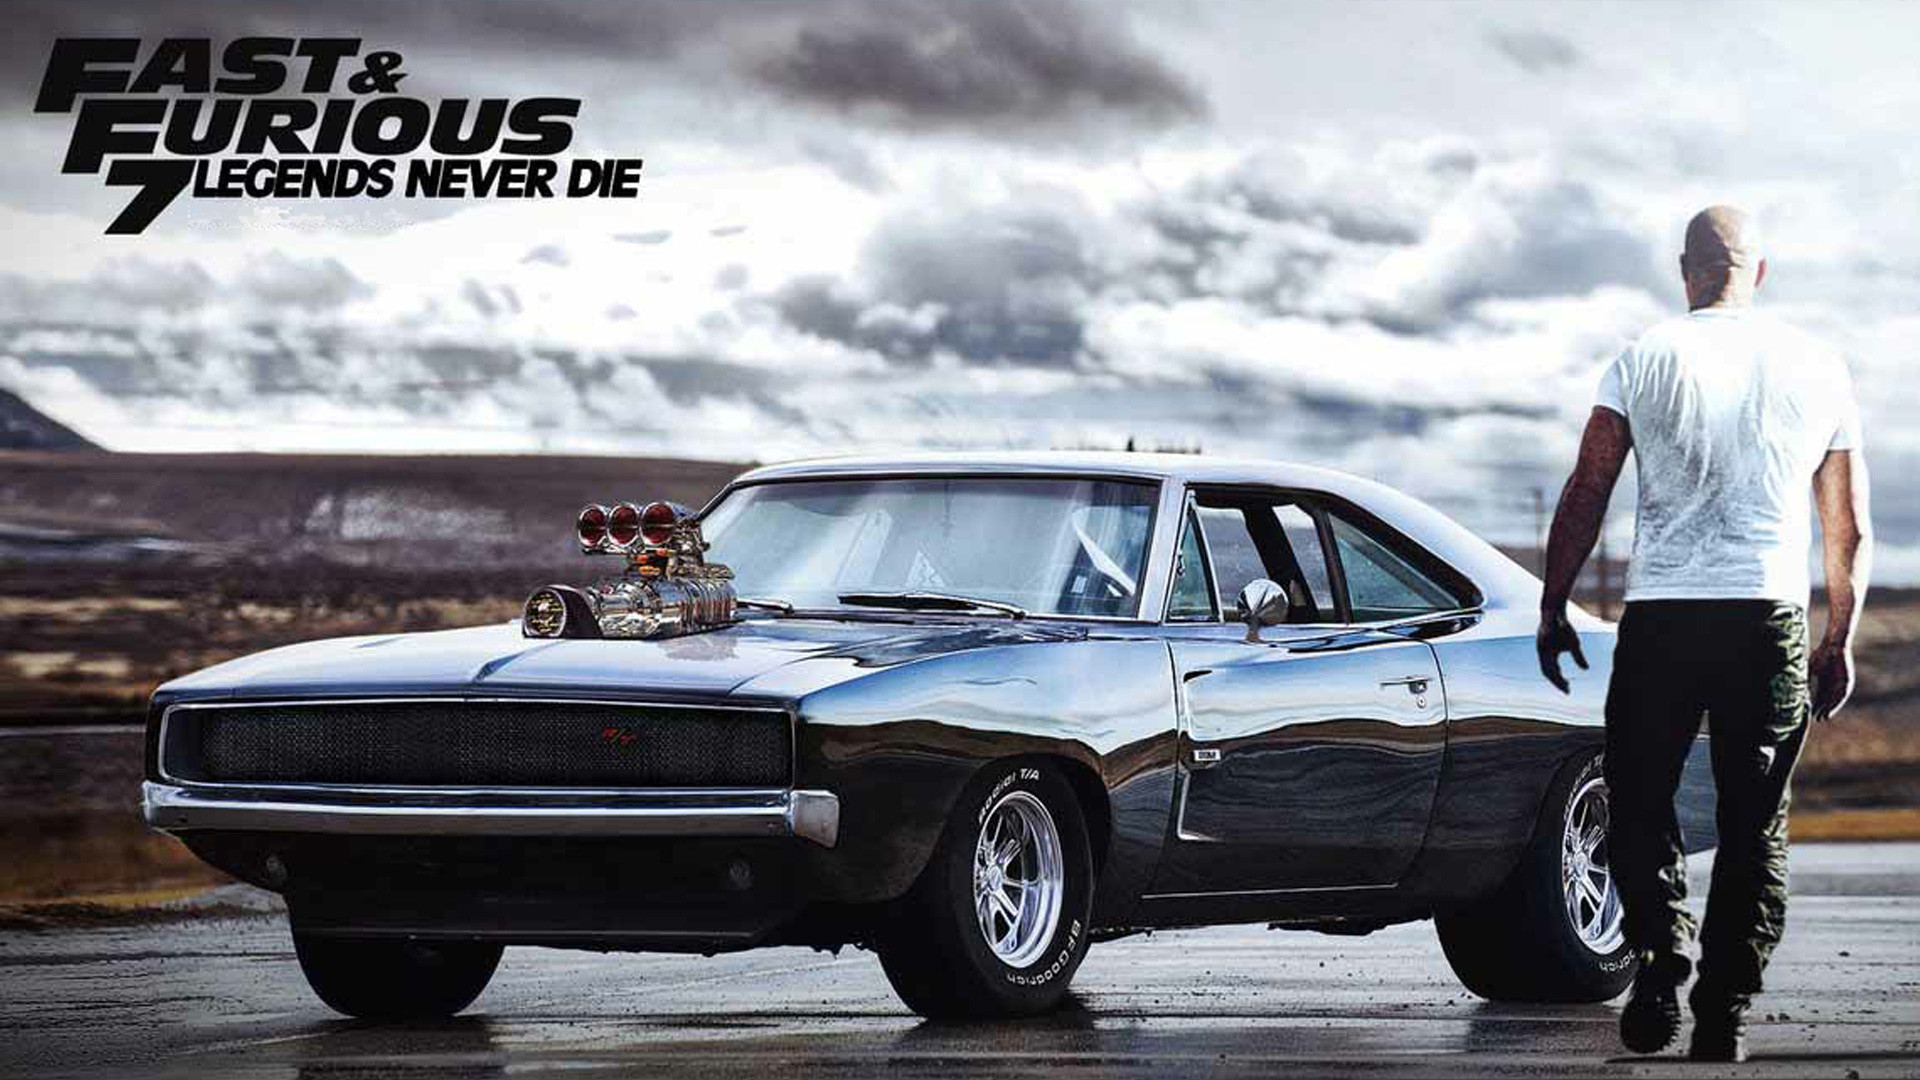 Fast Furious HD Wallpapers Backgrounds Wallpaper